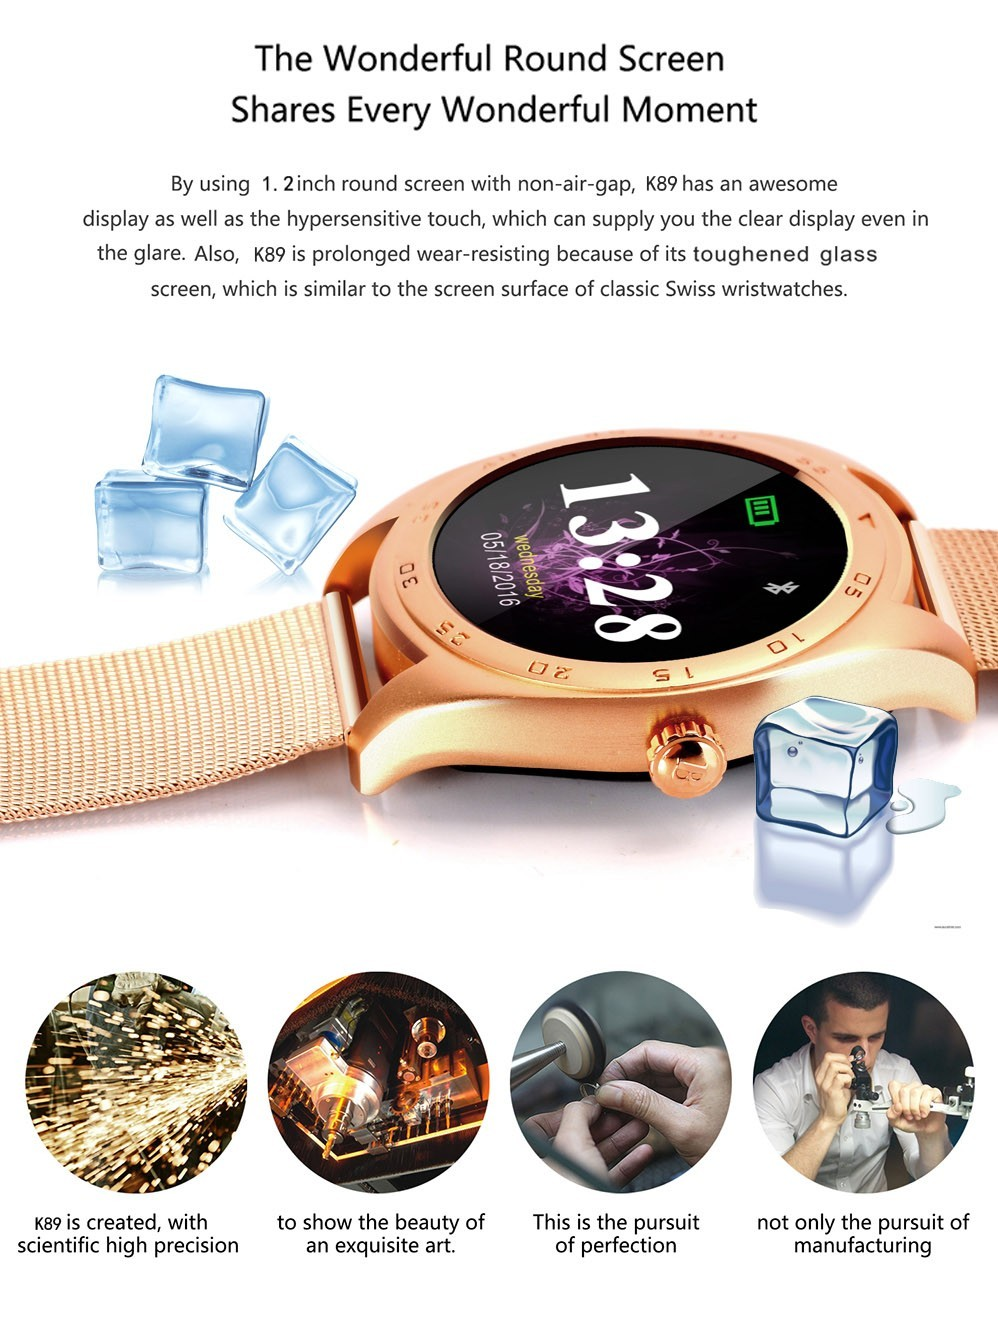 k89 wrist watches men women leather strap Round Touch Screen smartwatch Phone smart watch heart rate mobile watch phones x10